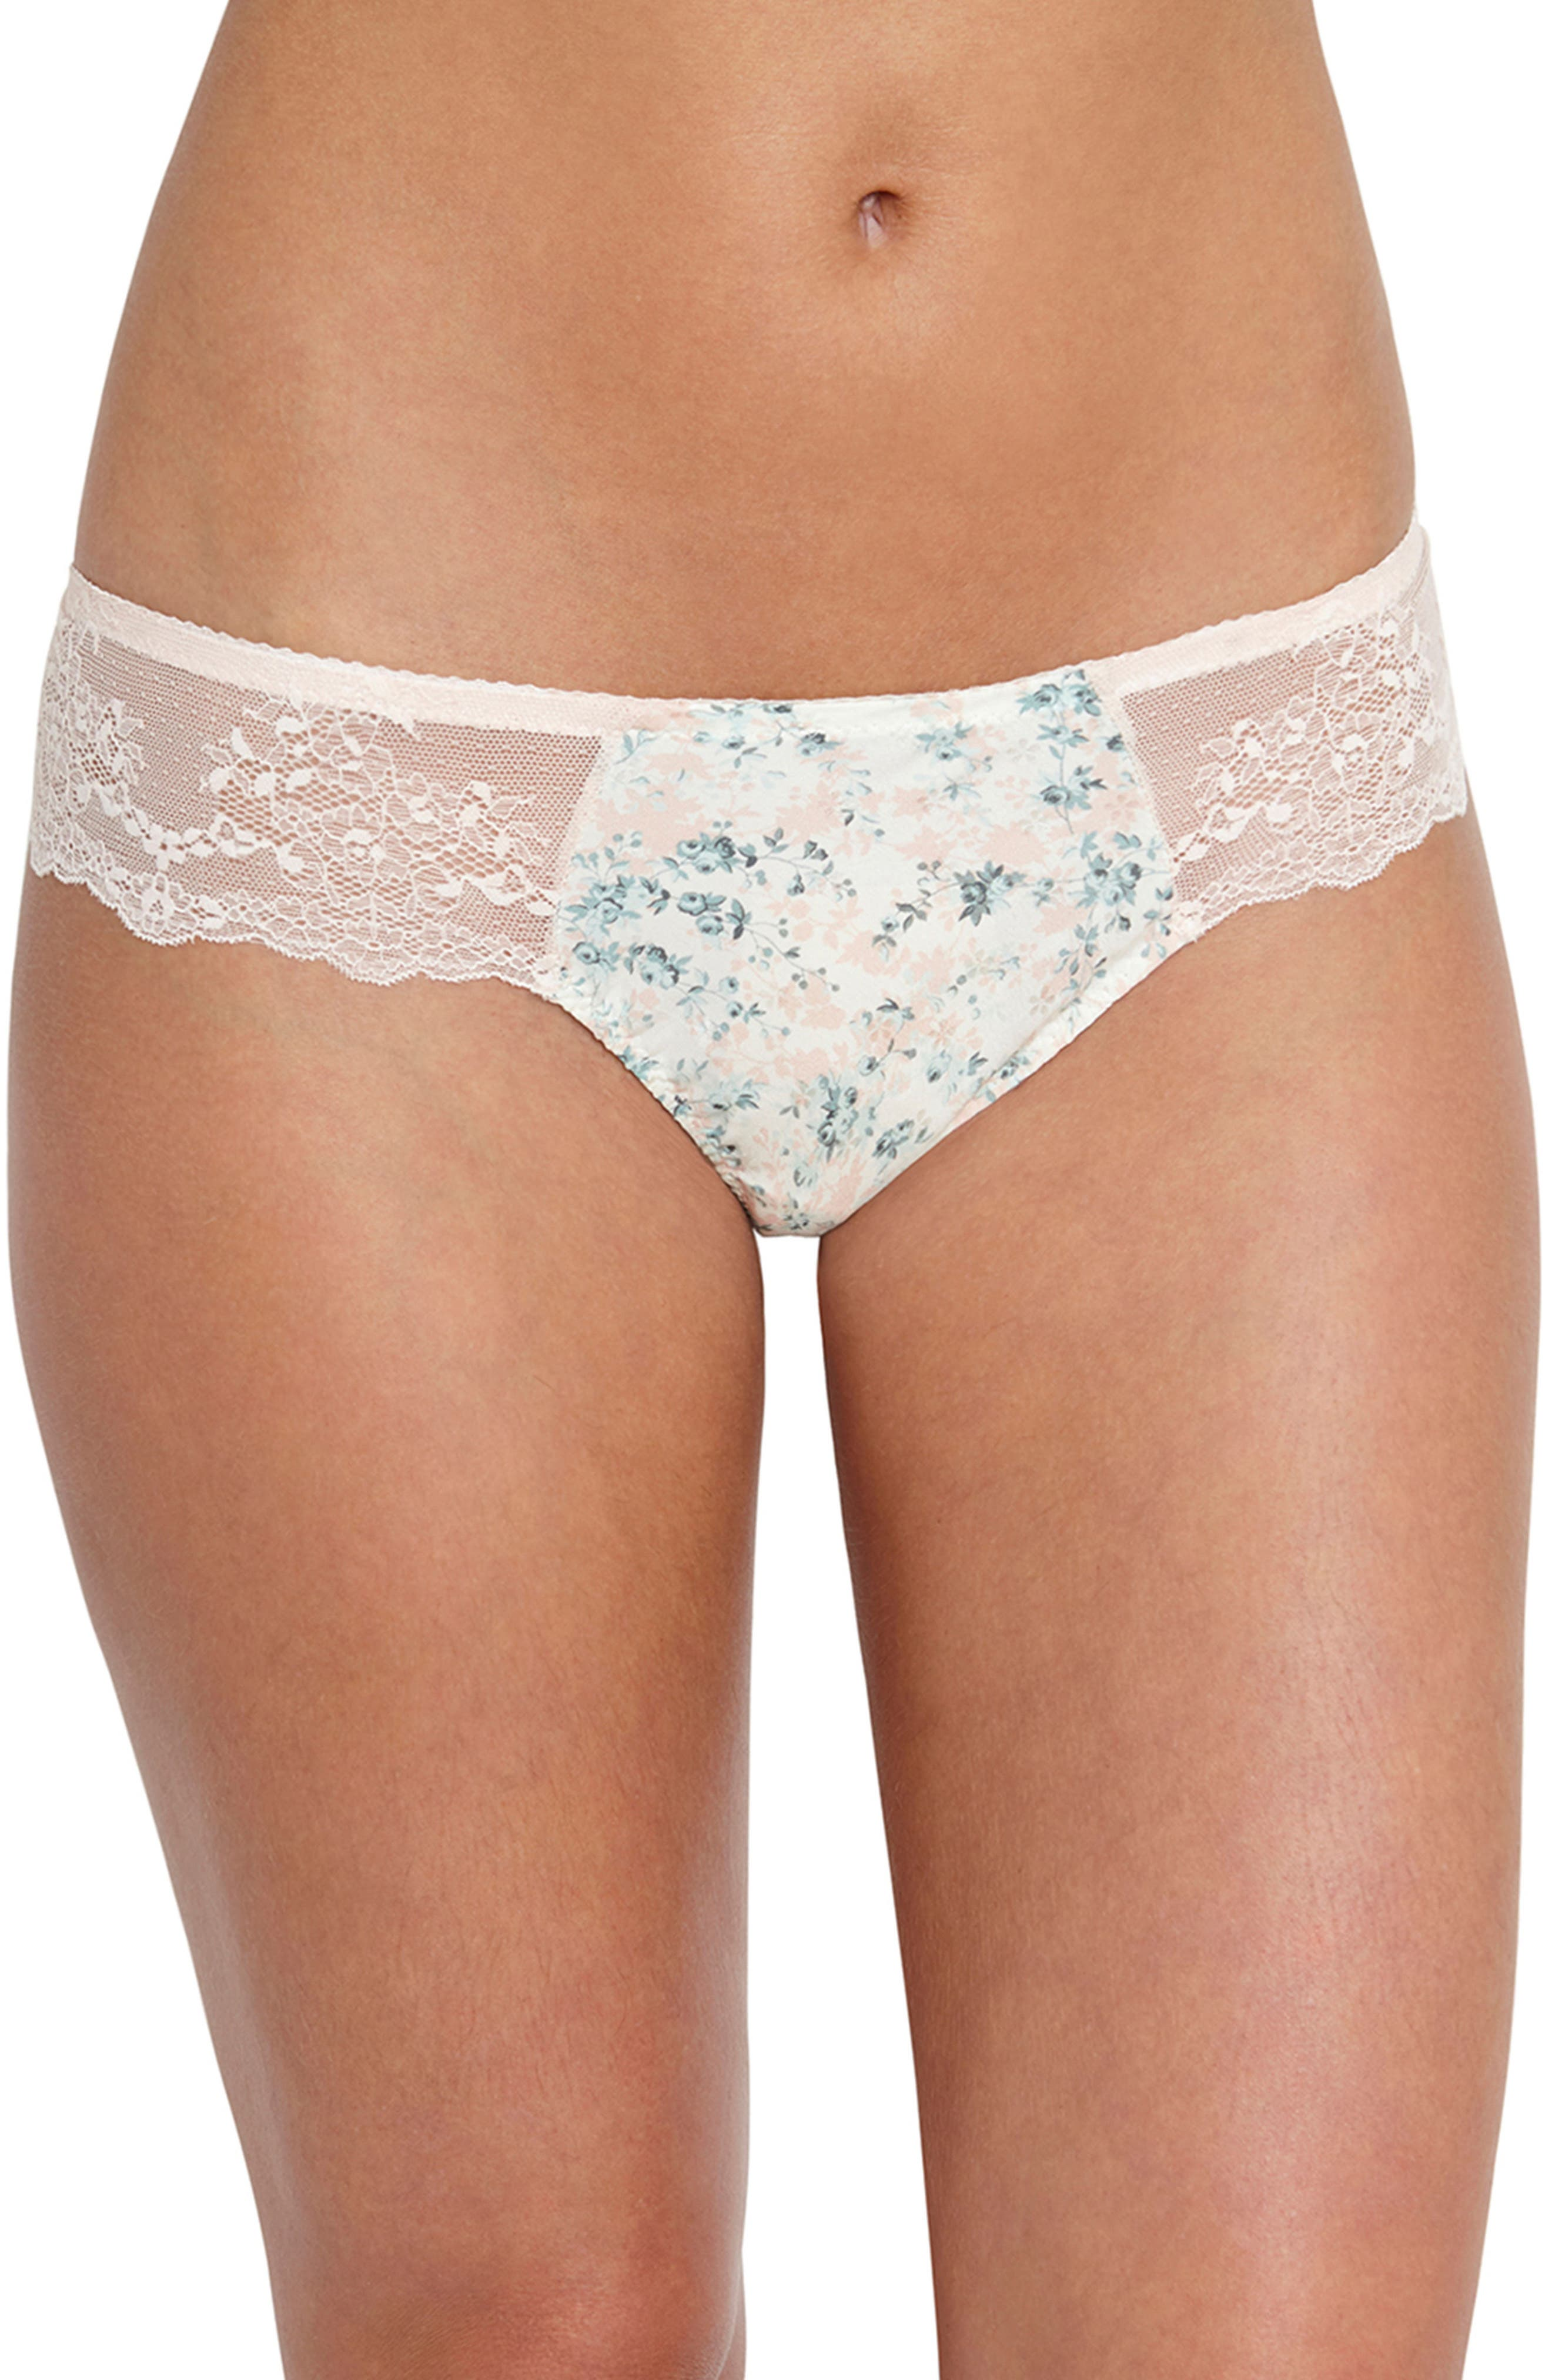 Lily Lace Silk Thong,                         Main,                         color, Ivory Floral Print